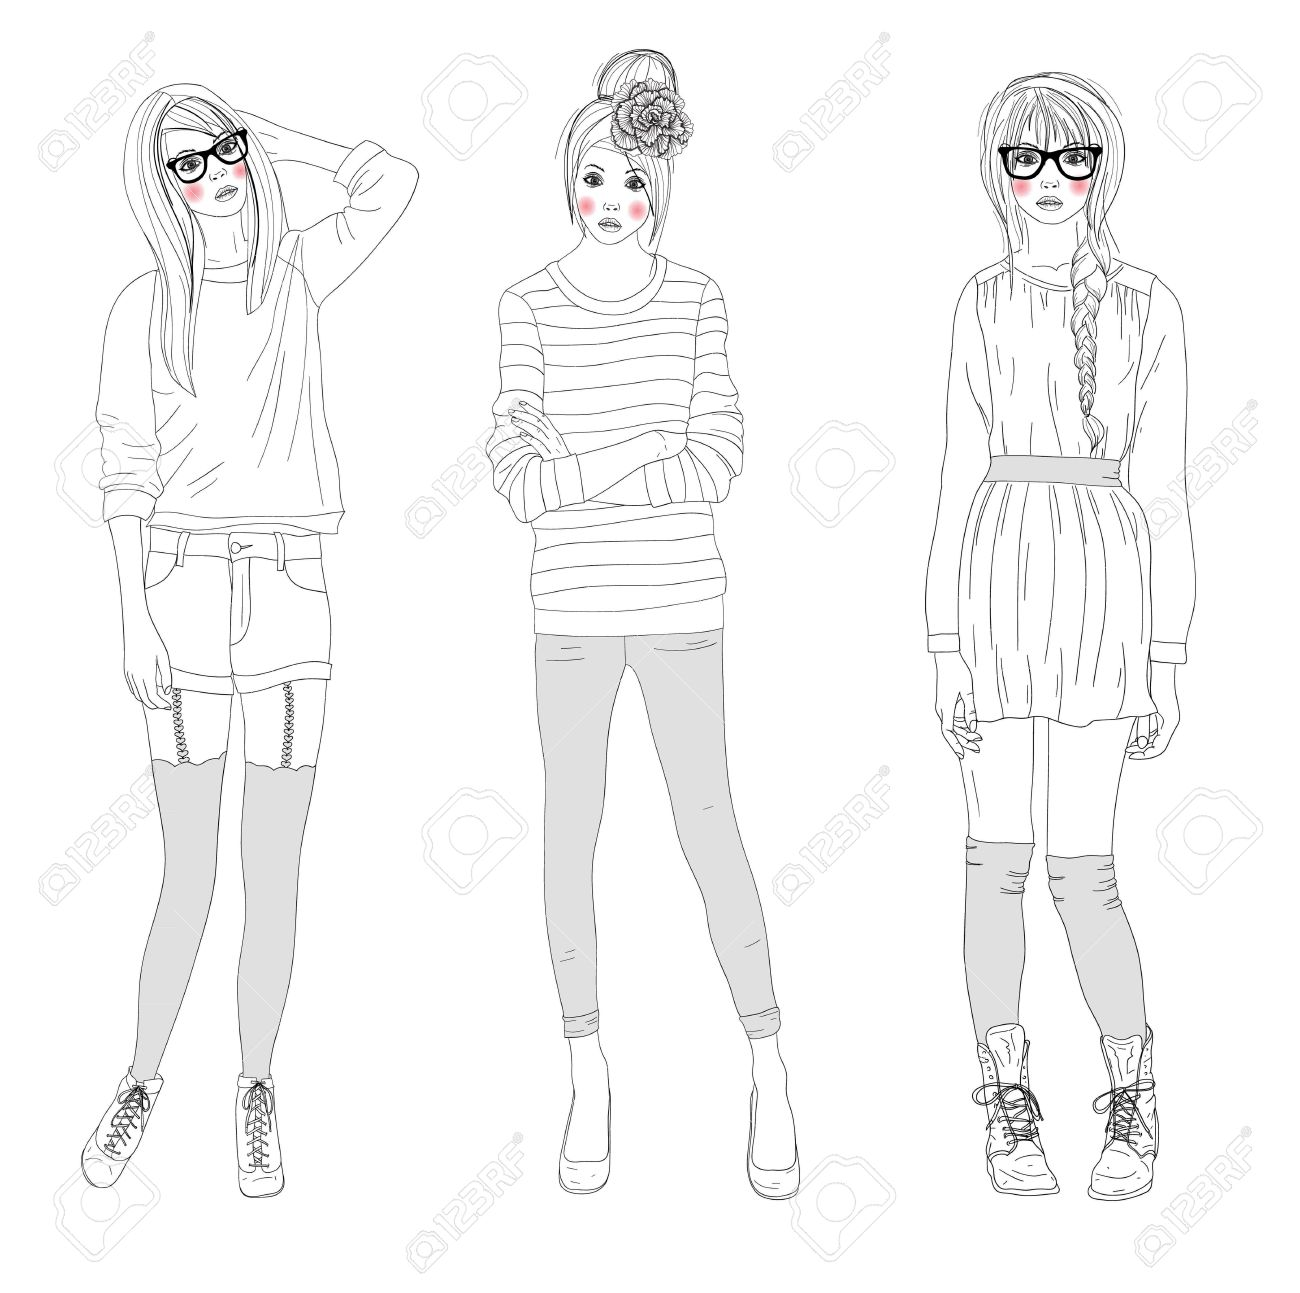 Young beautiful girls fashion illustration. Vector illustration. Background with teen females in fashionable clothes posing. Fashion illustration. Stock Vector - 11232794